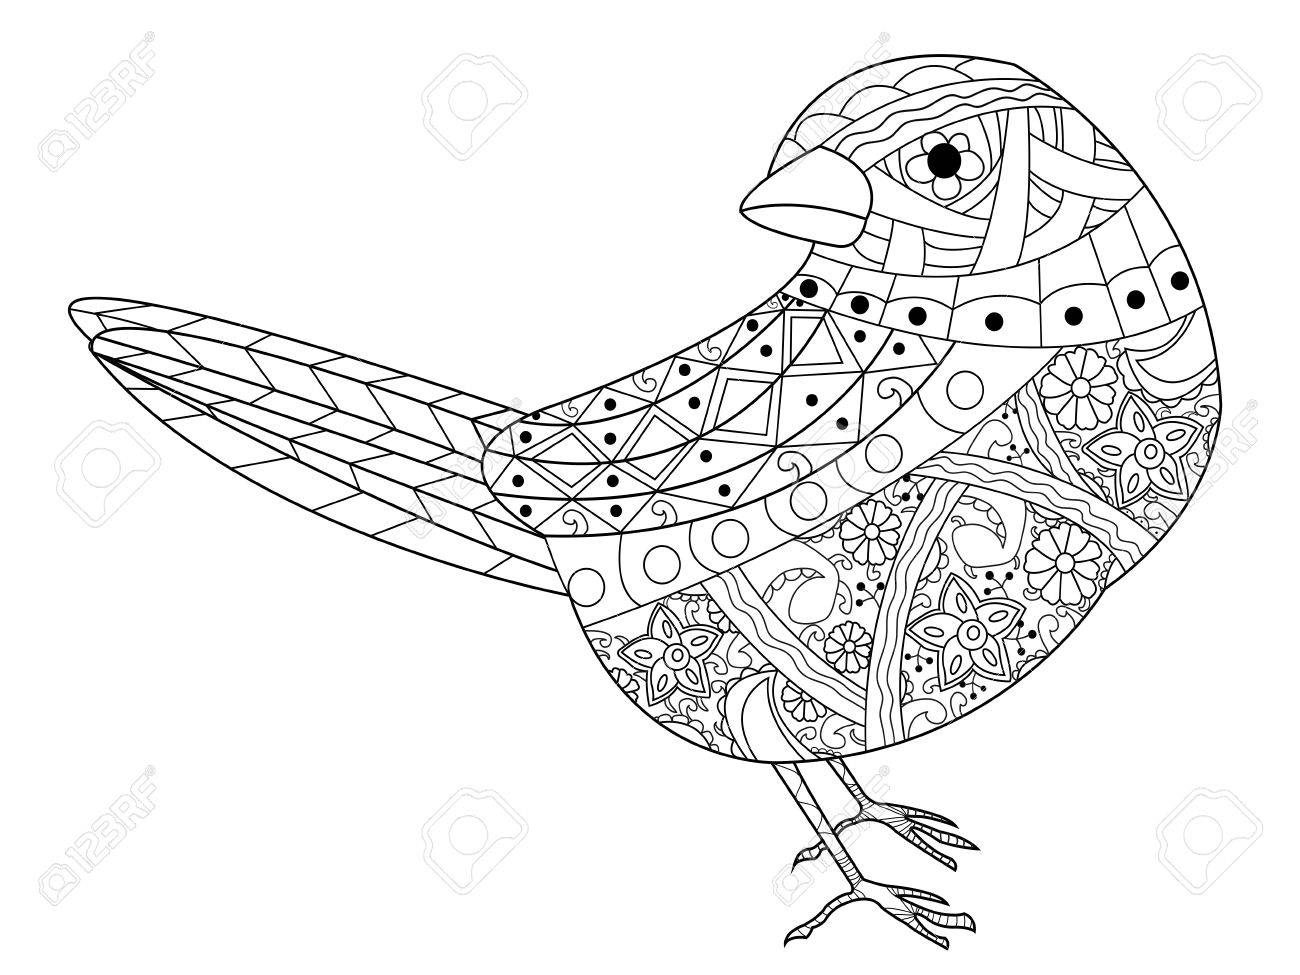 Sparrow Coloring Book For Adults Vector Illustration. Anti-stress ...